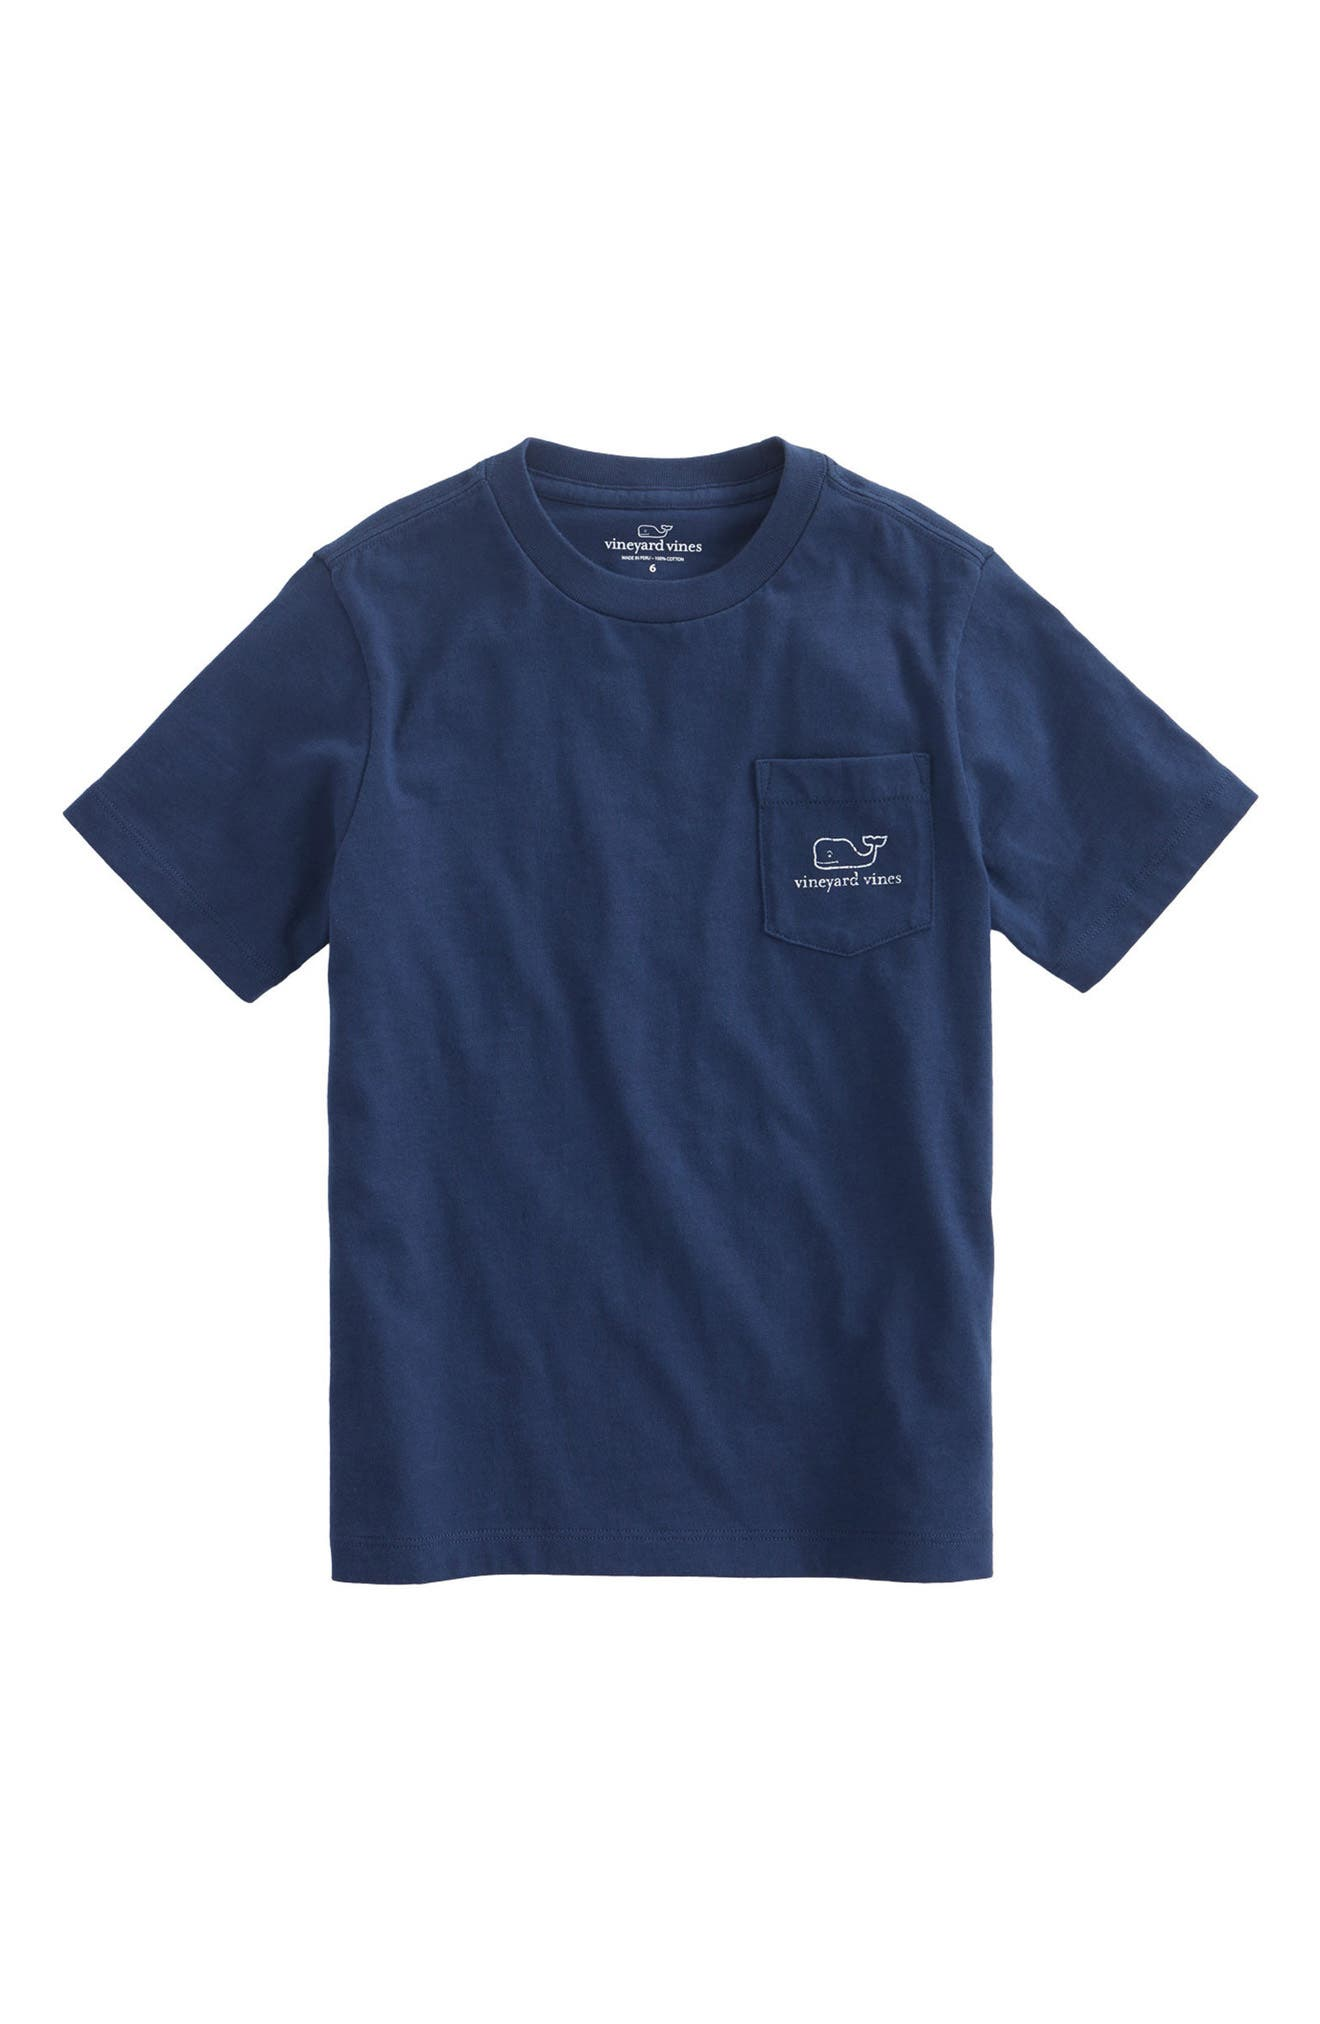 Alternate Image 1 Selected - vineyard vines Whale T-Shirt (Big Boys)